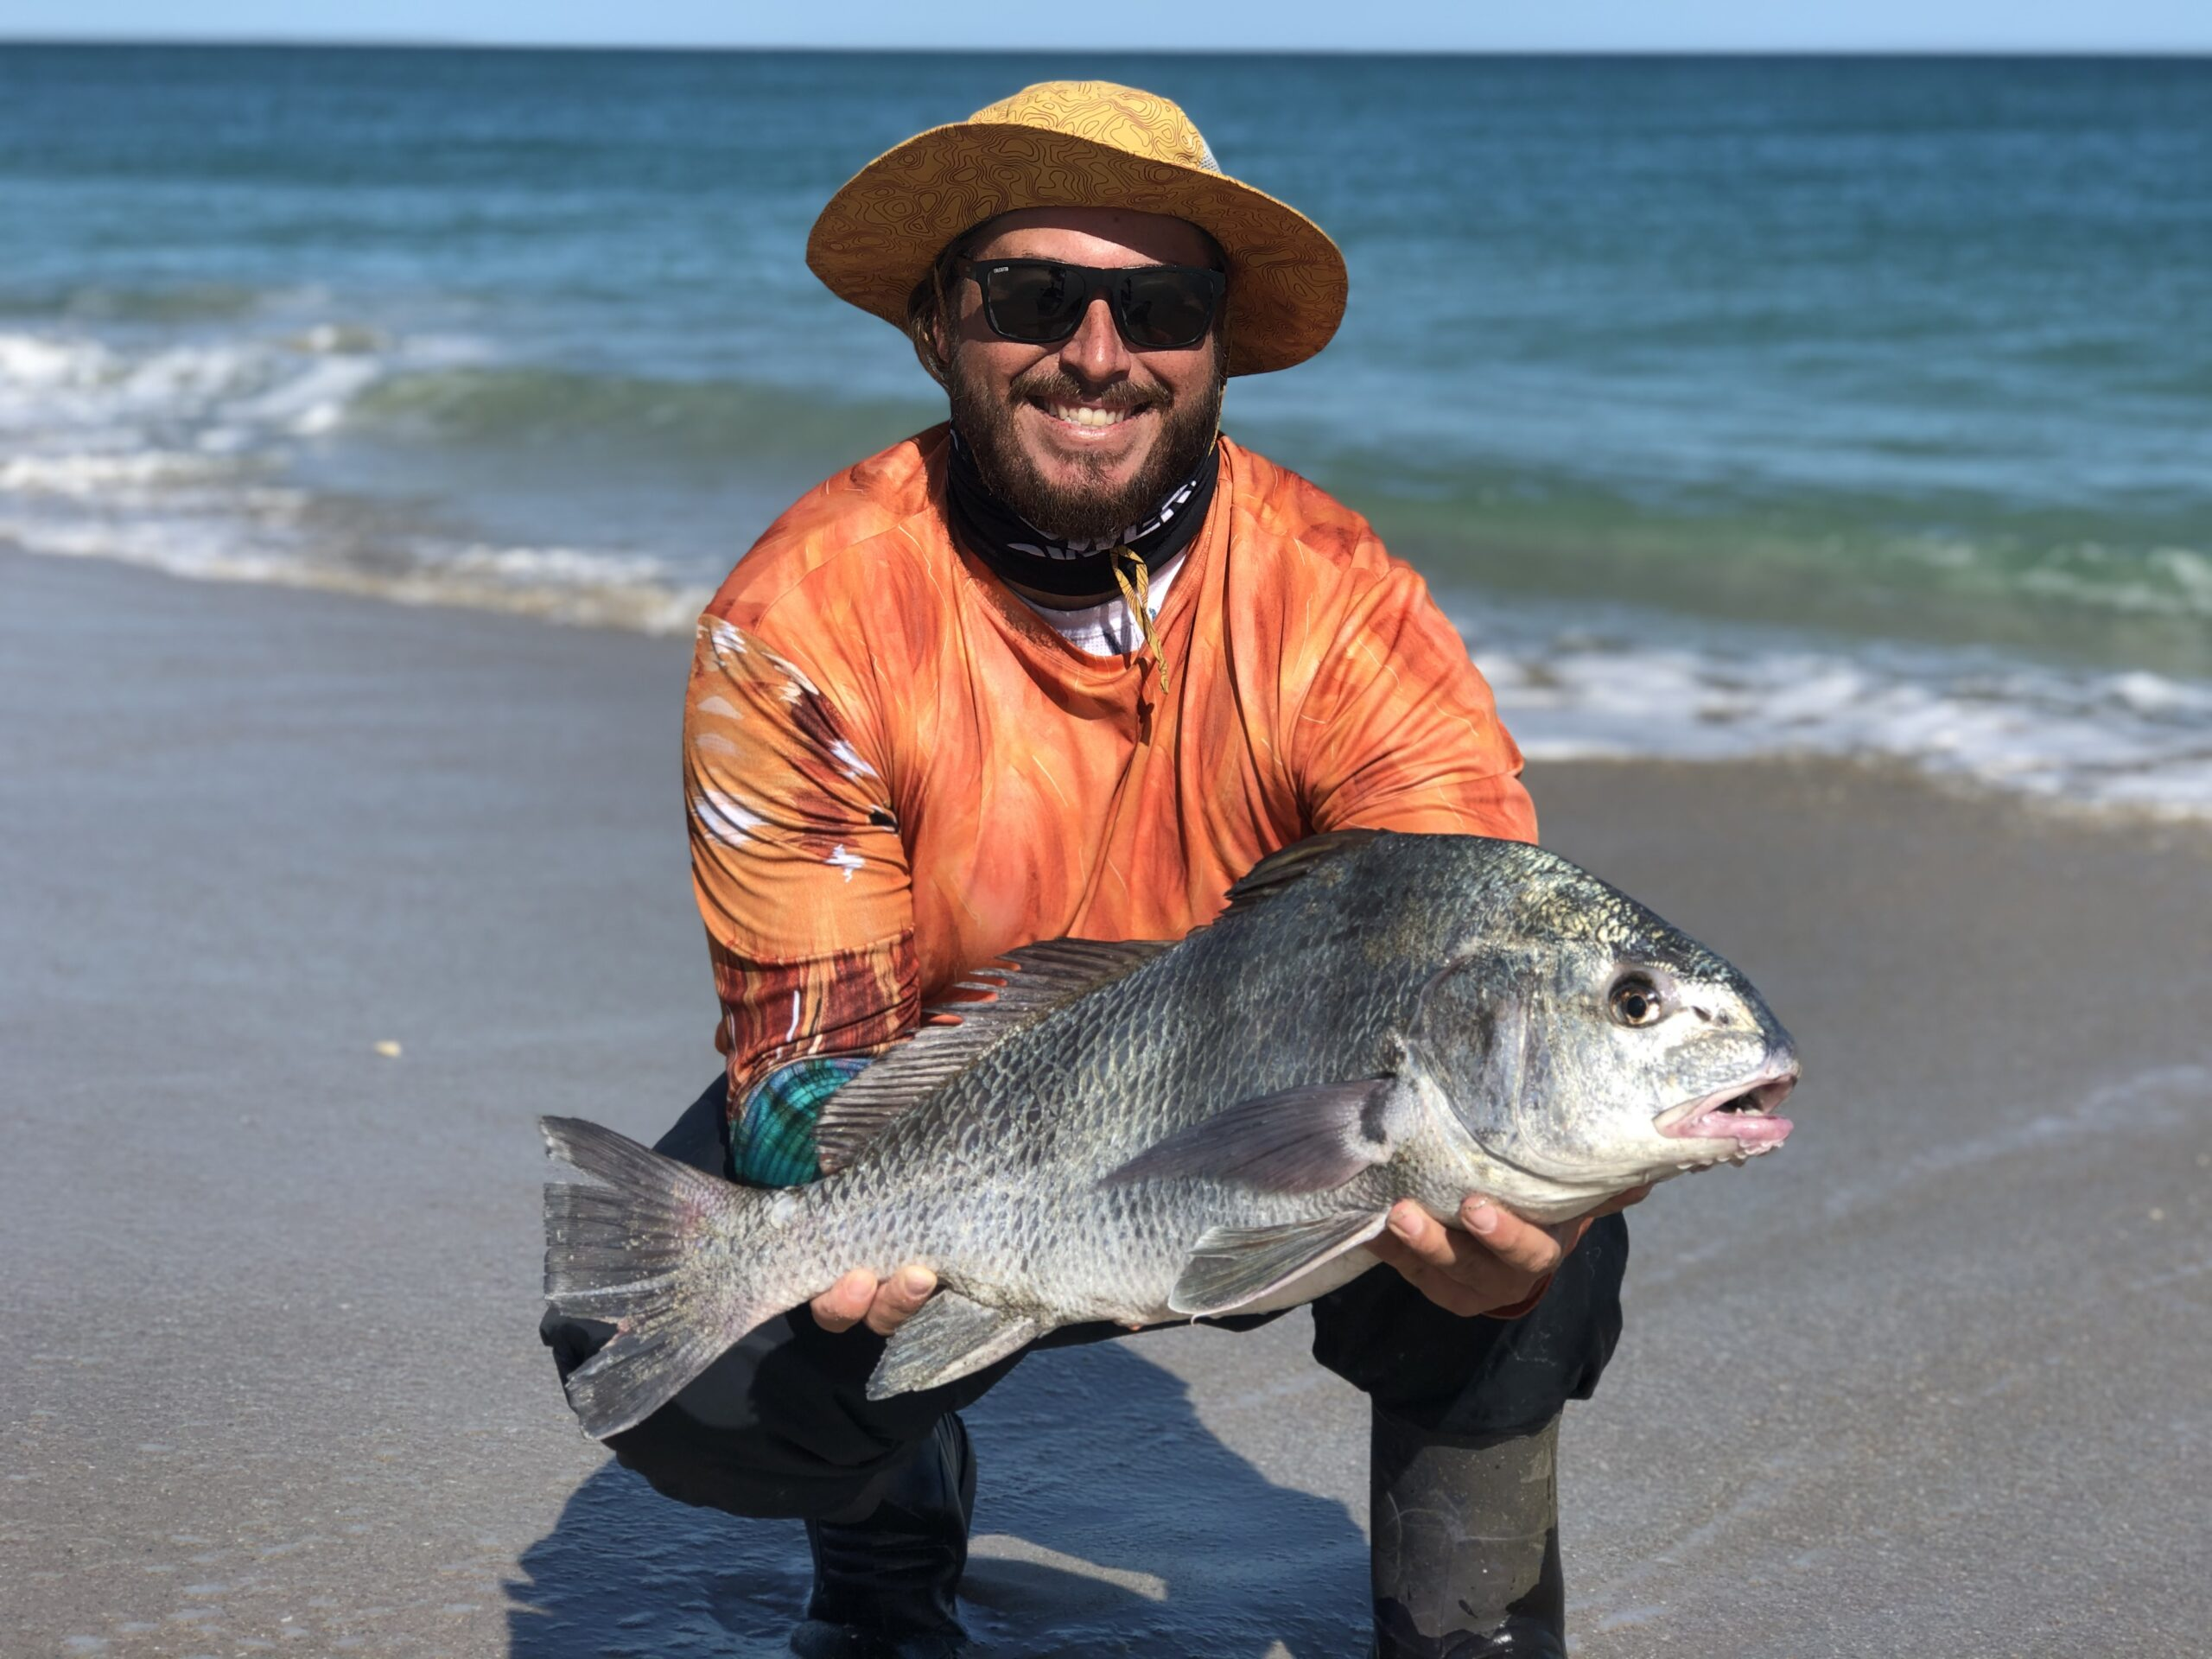 Brevard County Surf Fishing Report by Capt. Lukas